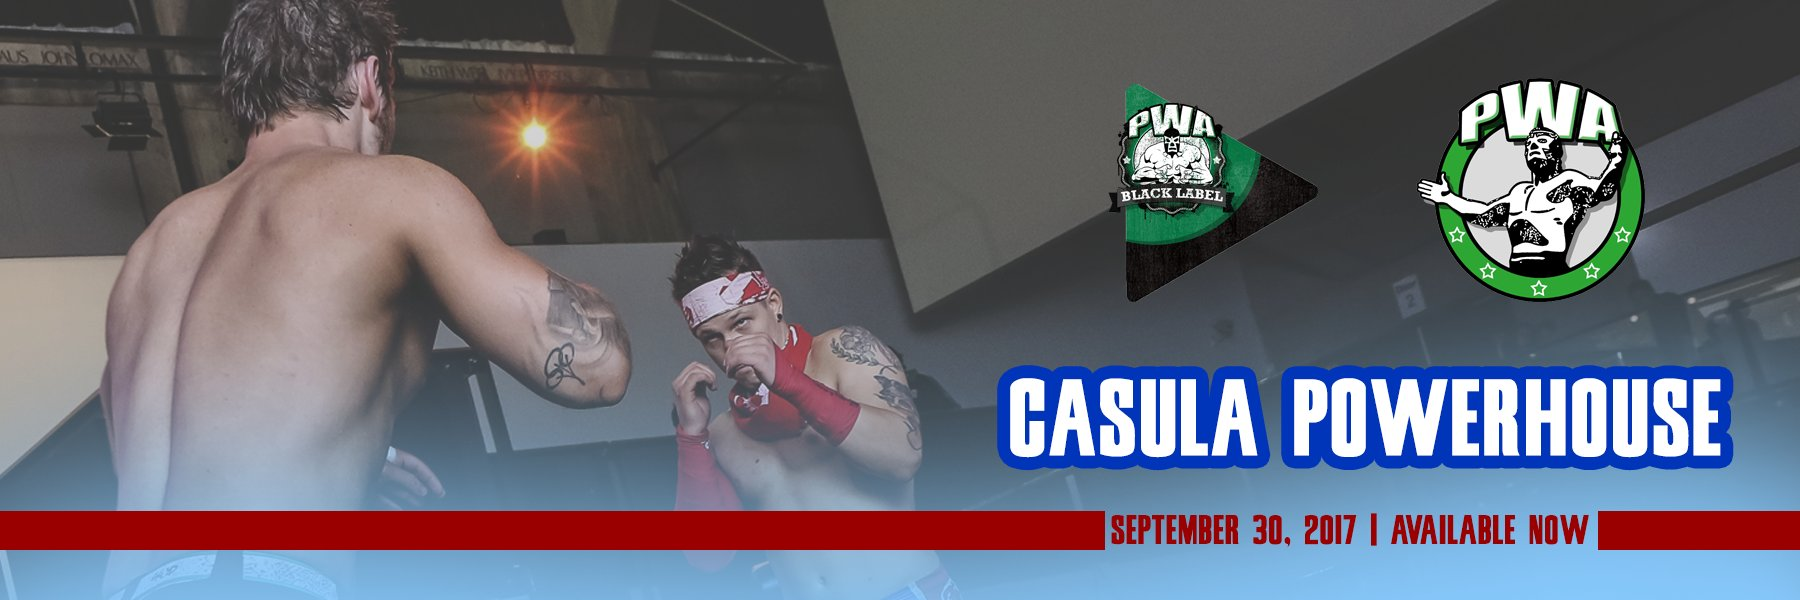 Pro Wrestling Australia LIVE at the Casula Powerhouse! Available now!